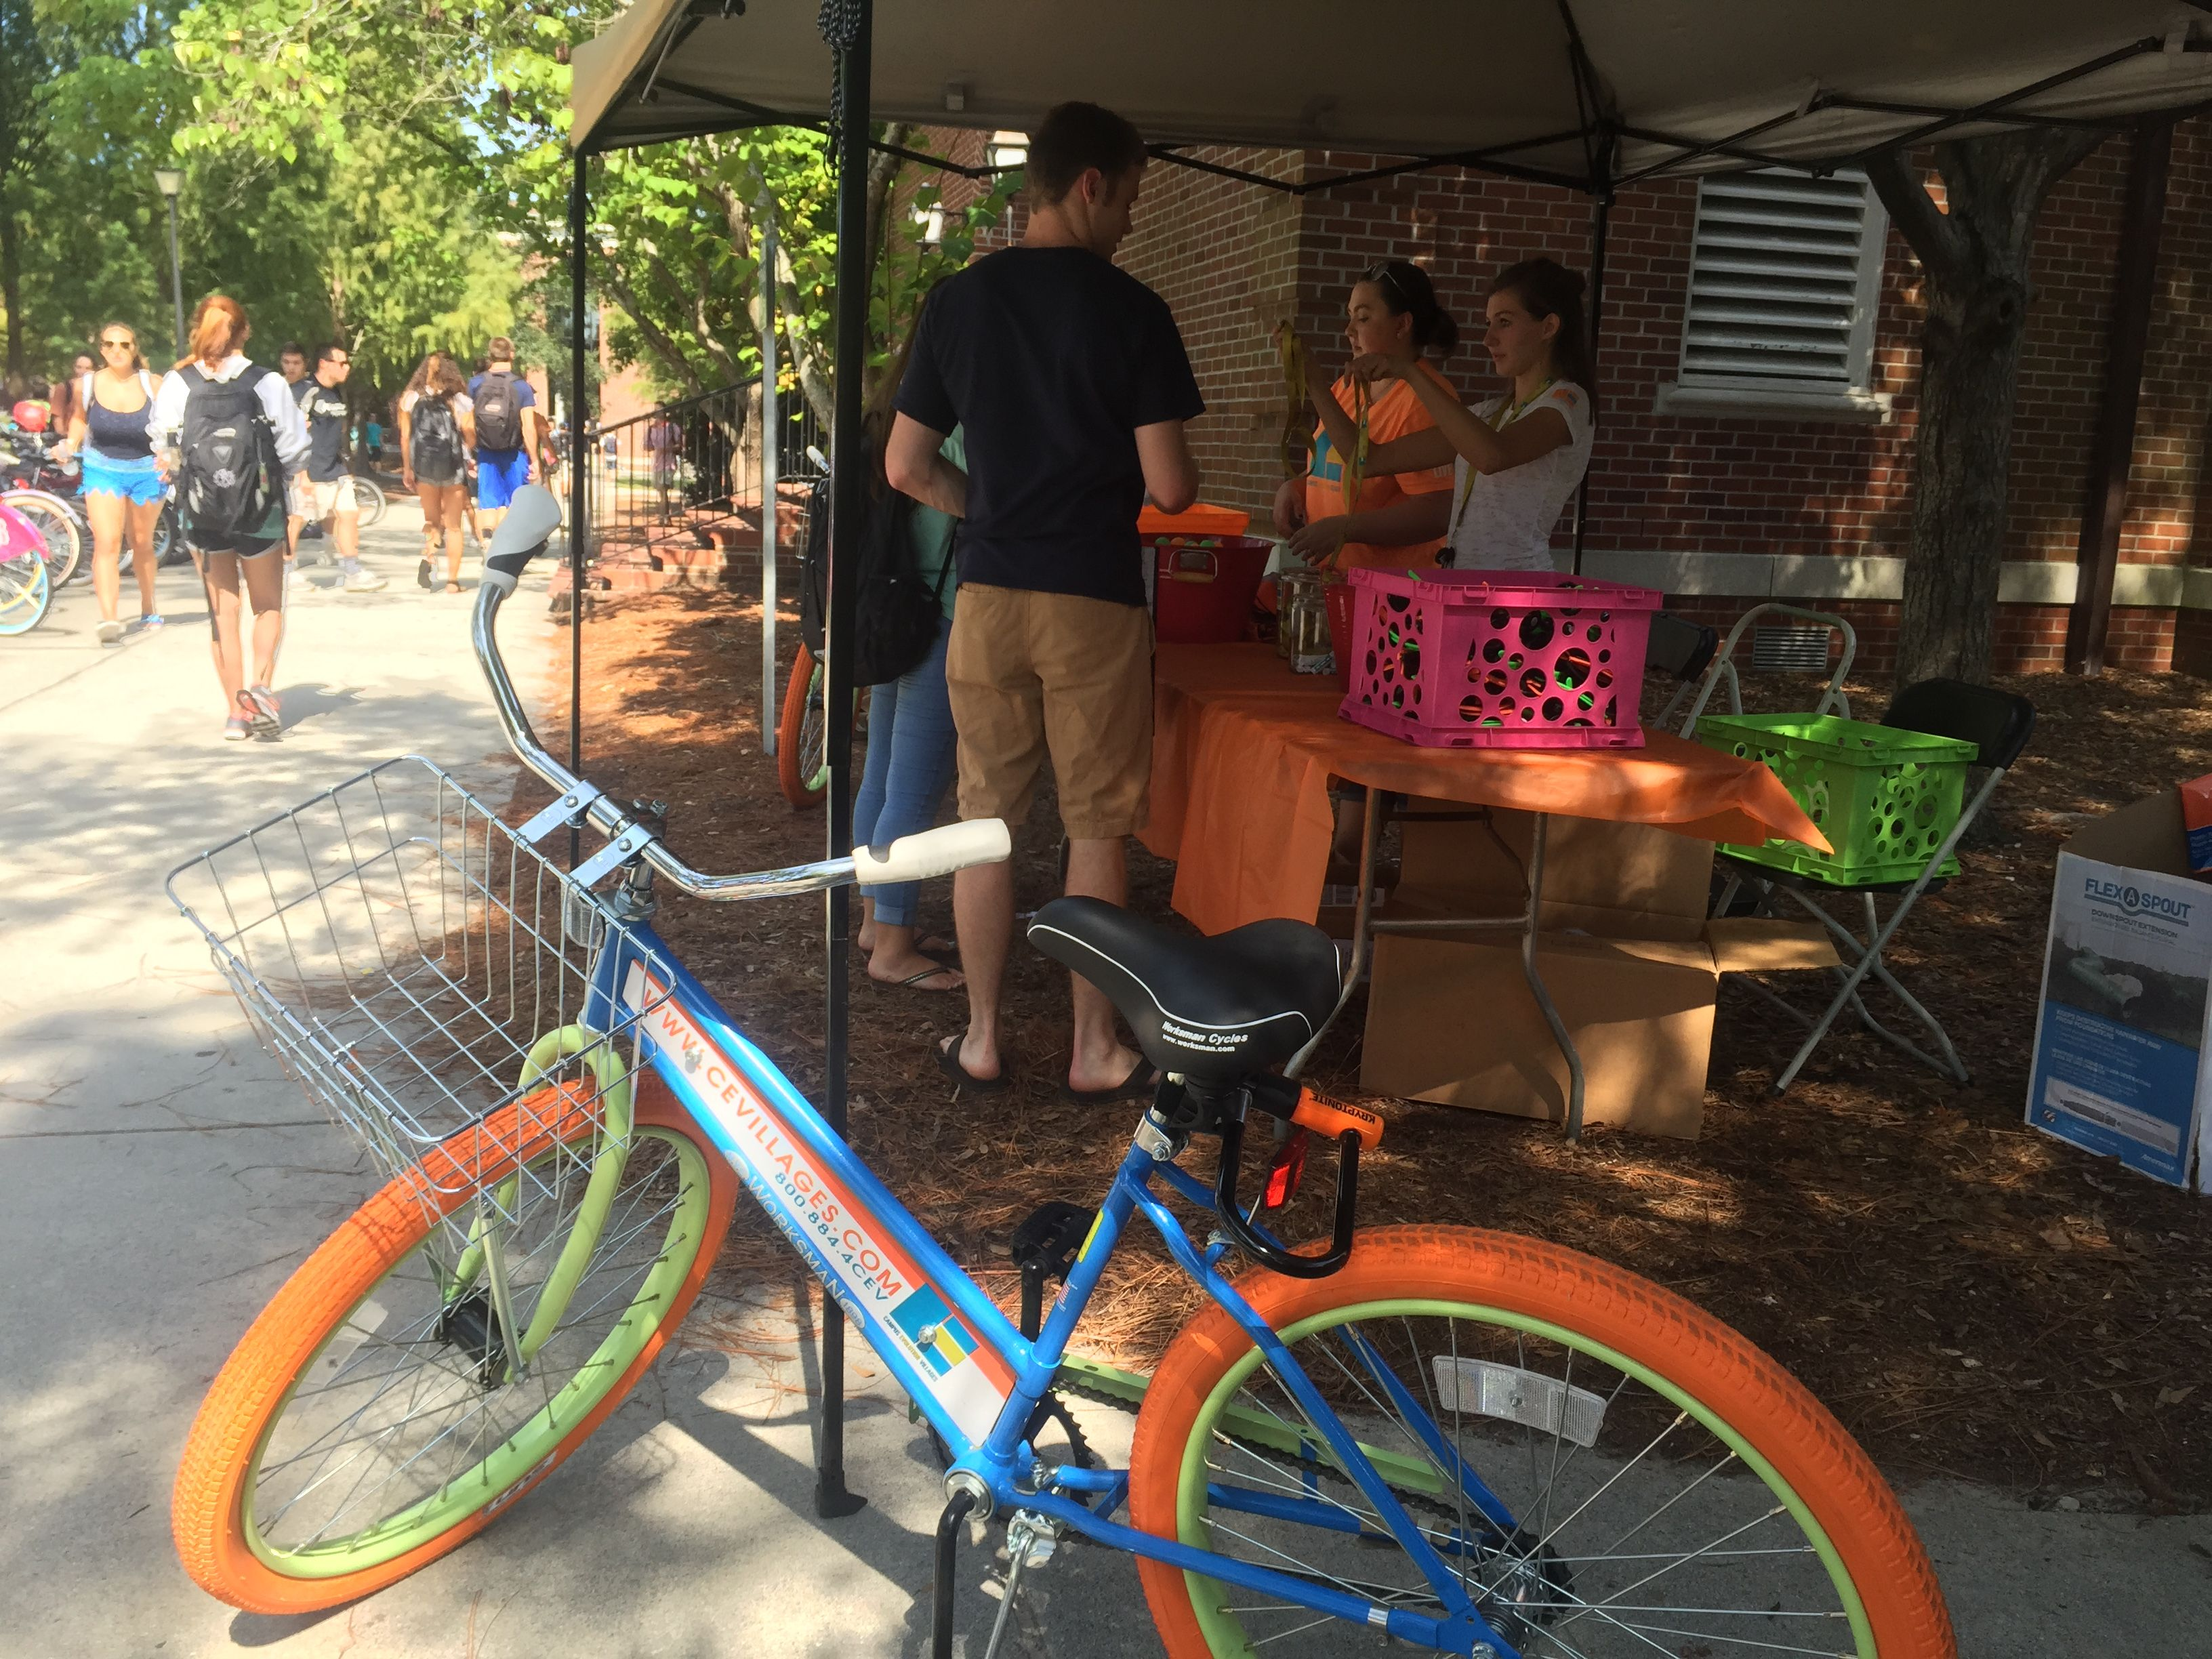 Cev Bikes Take Over Uncw S Campus Livebigcev With Images